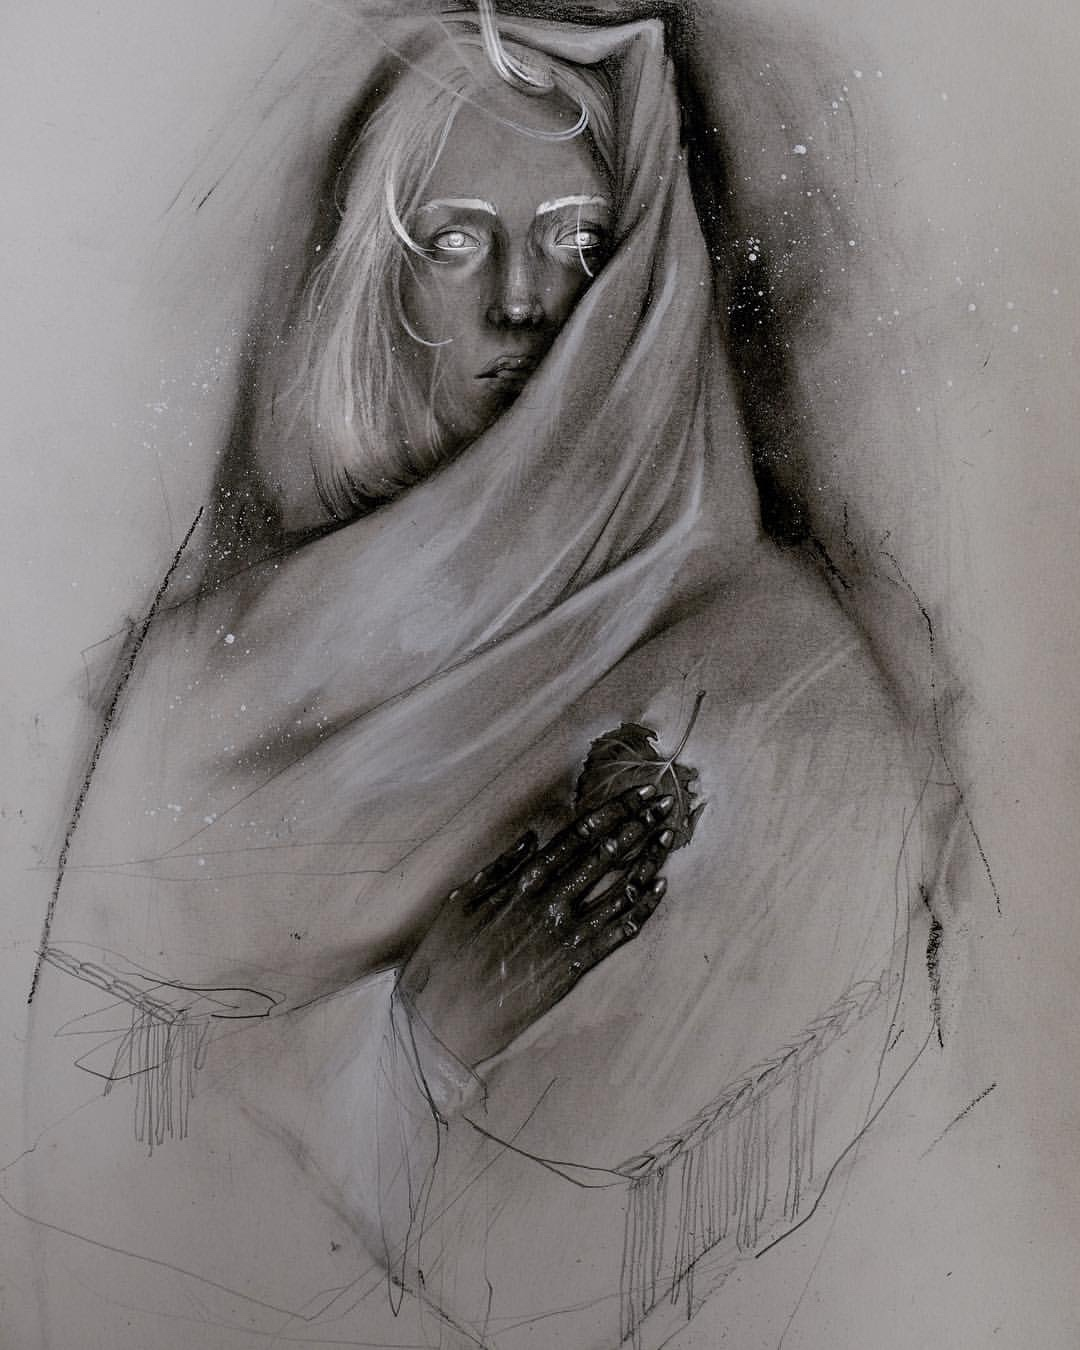 Yadou, dark, art, illustration, drawing, obscure, pencil, charcoal